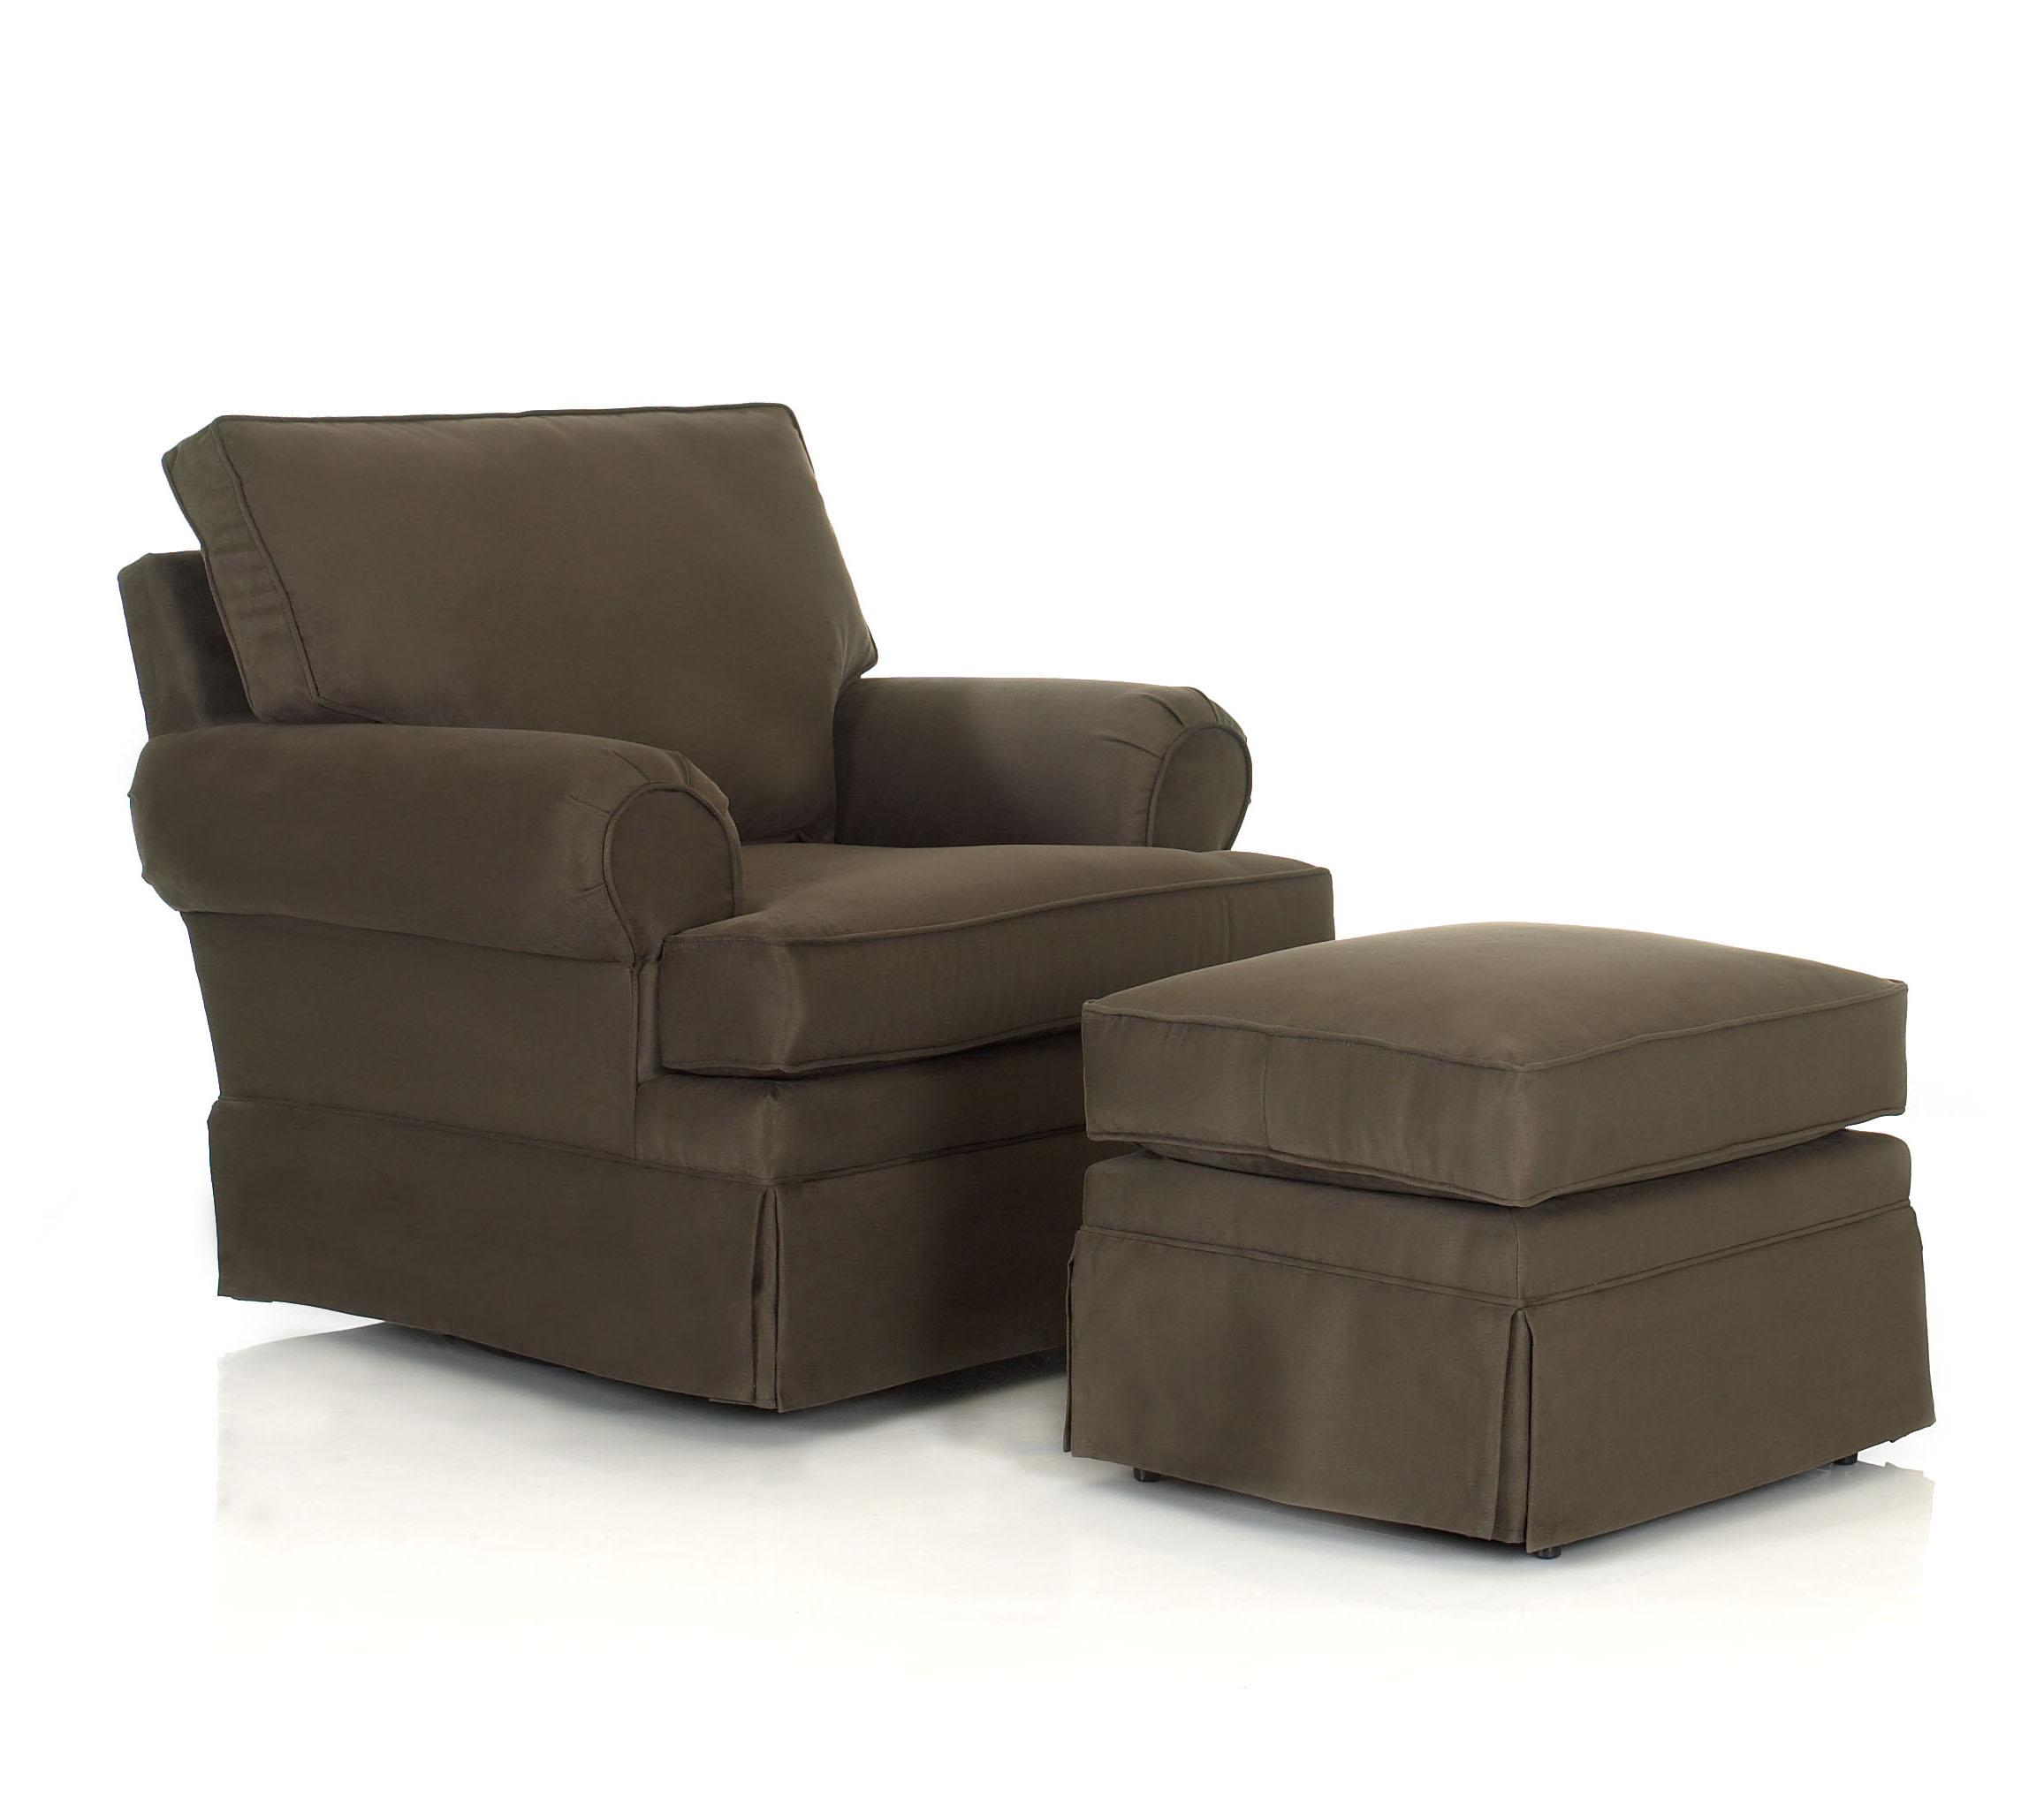 Carolina Chair and Ottoman